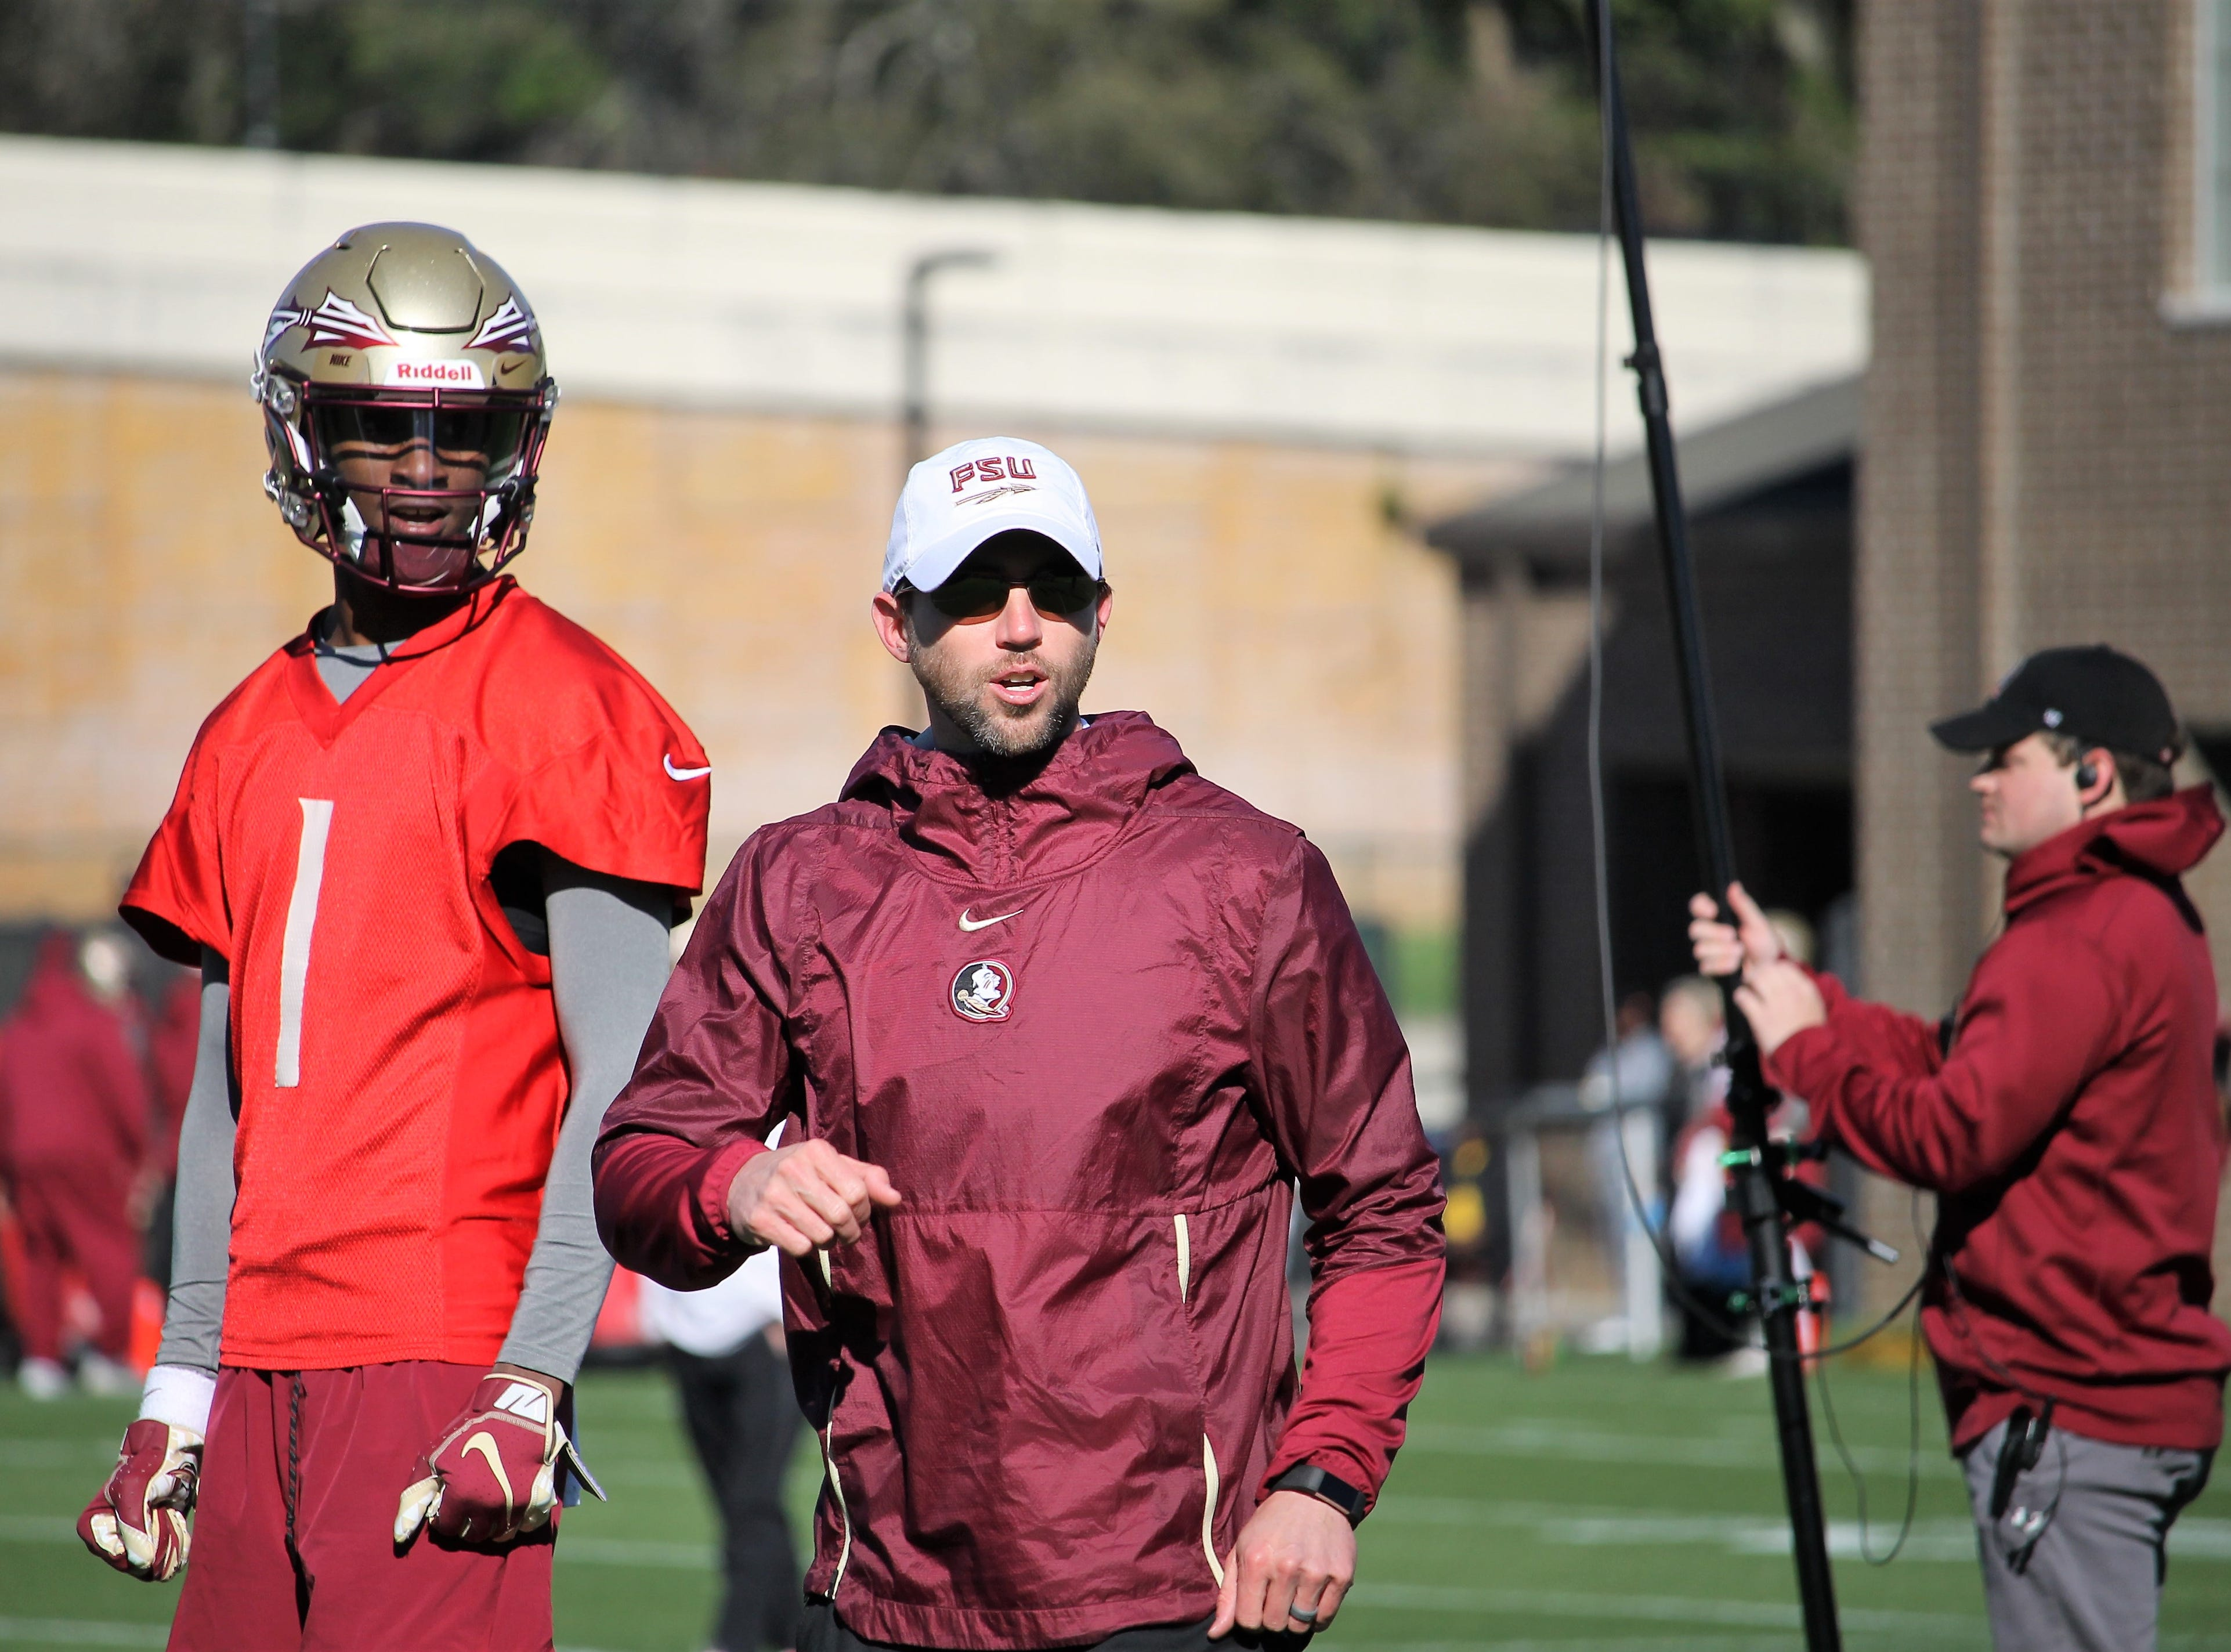 FSU QB James Blackman and offensive coordinator Kendal Briles at FSU football practice on March 6, 2019.